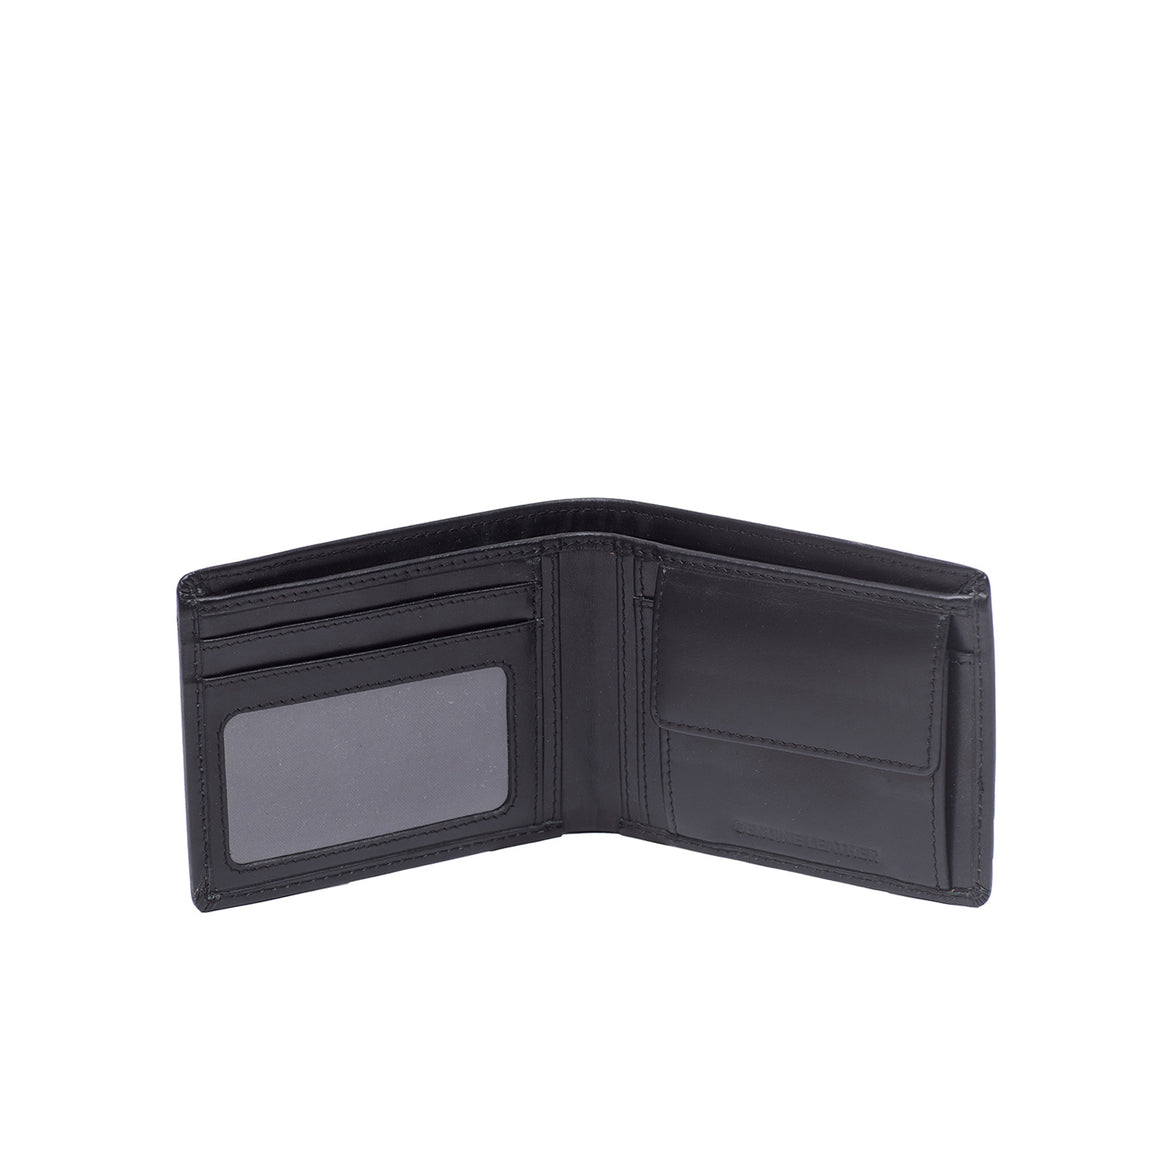 WT 0029 - TOHL BORGO MEN'S WALLET - CHARCOAL BLACK